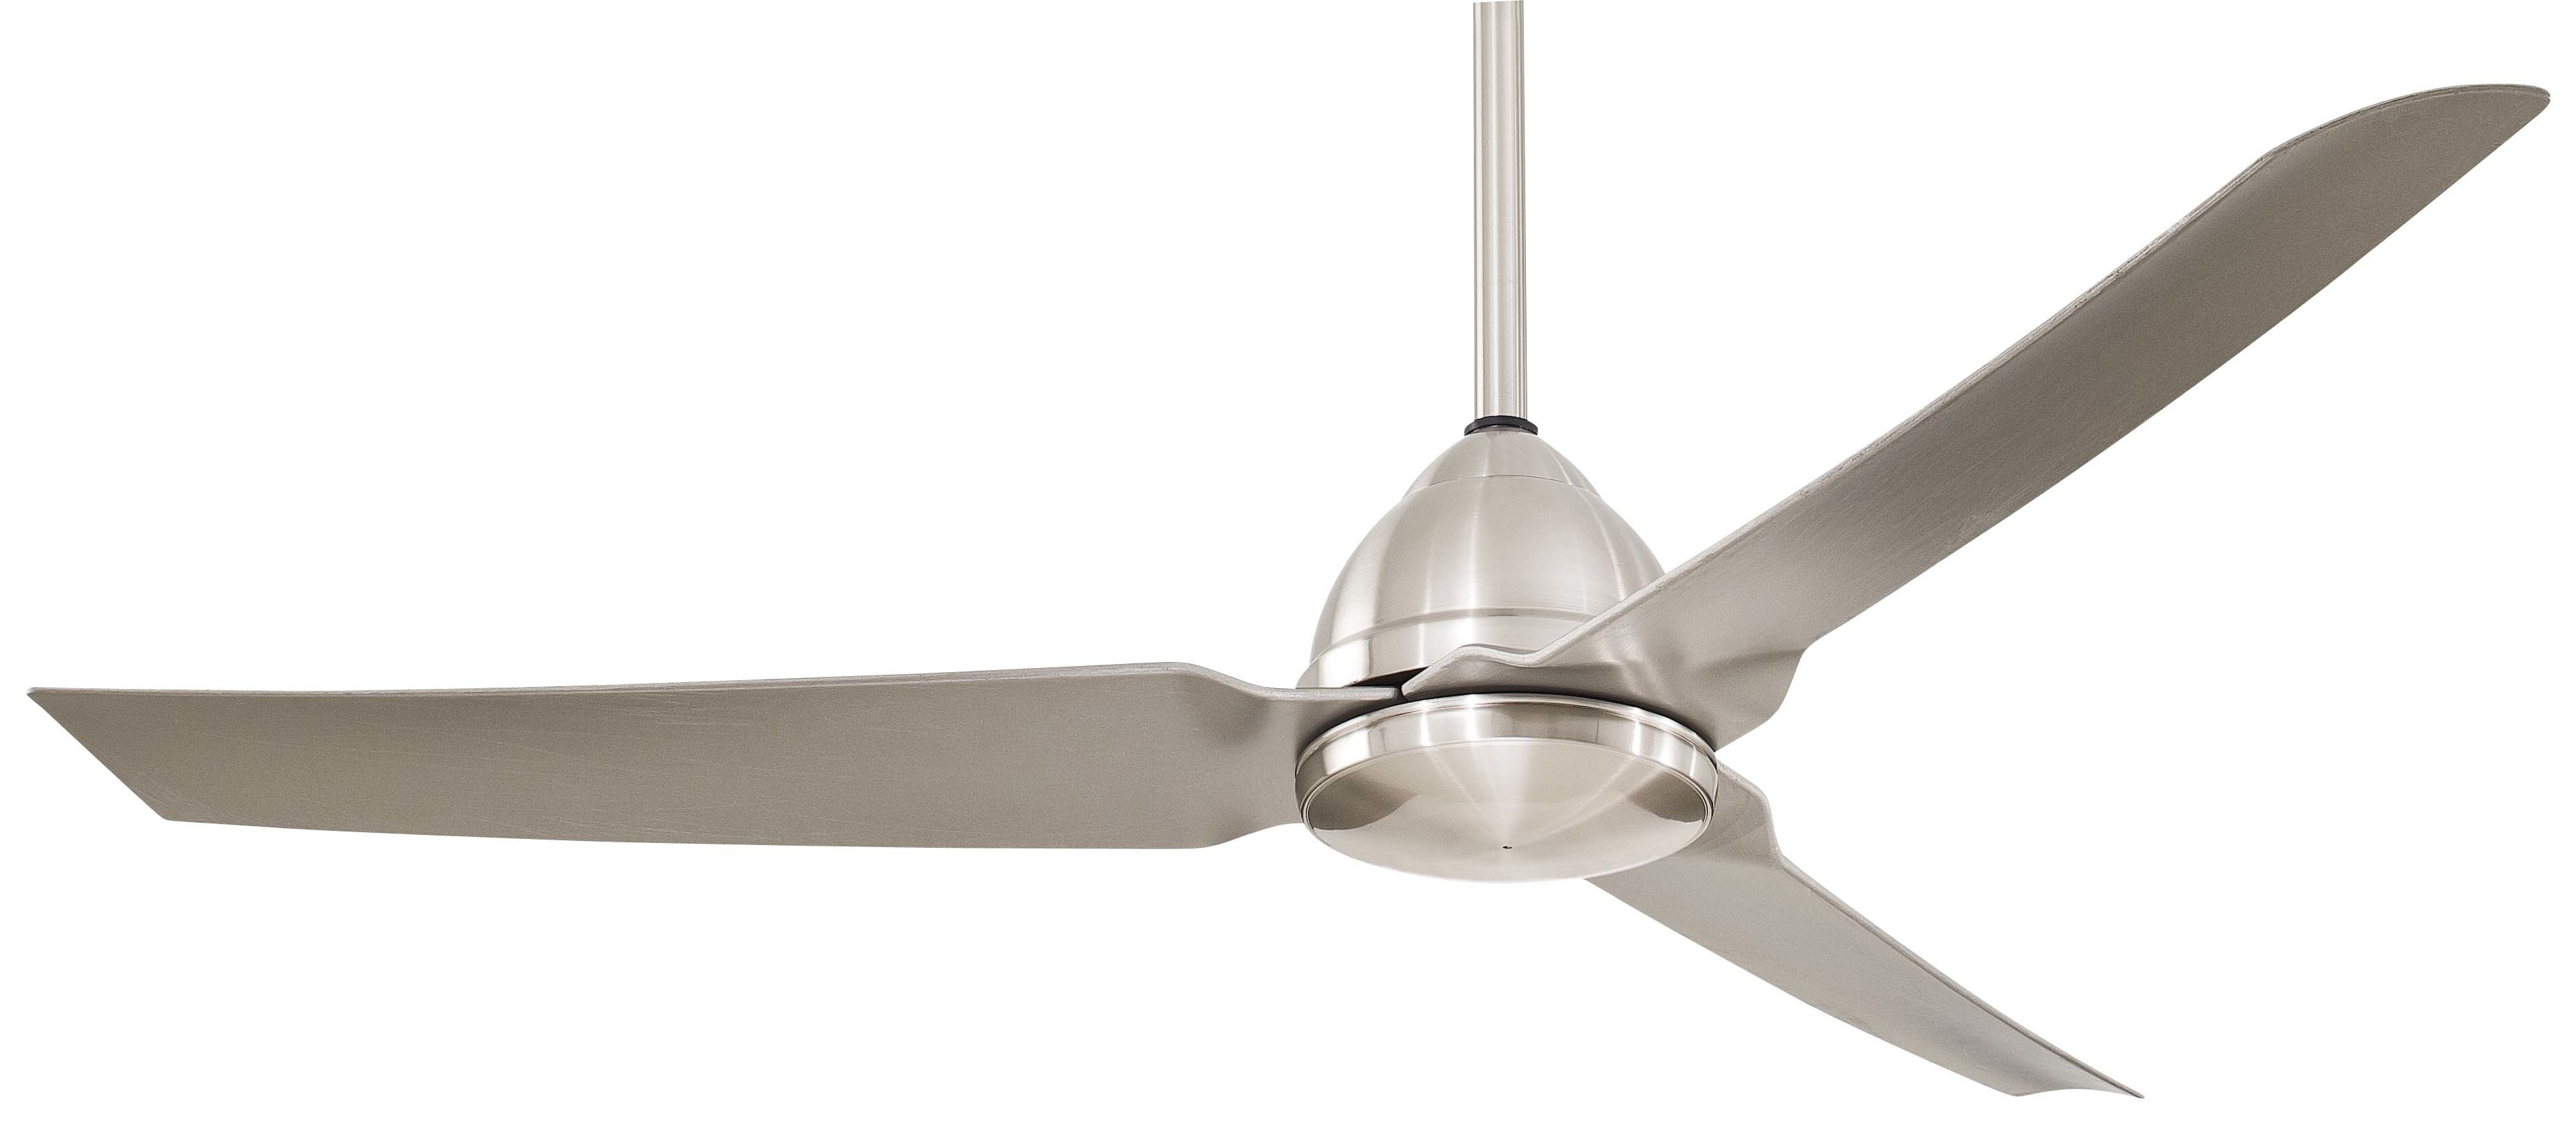 High Volume Outdoor Ceiling Fans For Well Liked Outdoor Ceiling Fans You'll Love (View 5 of 20)